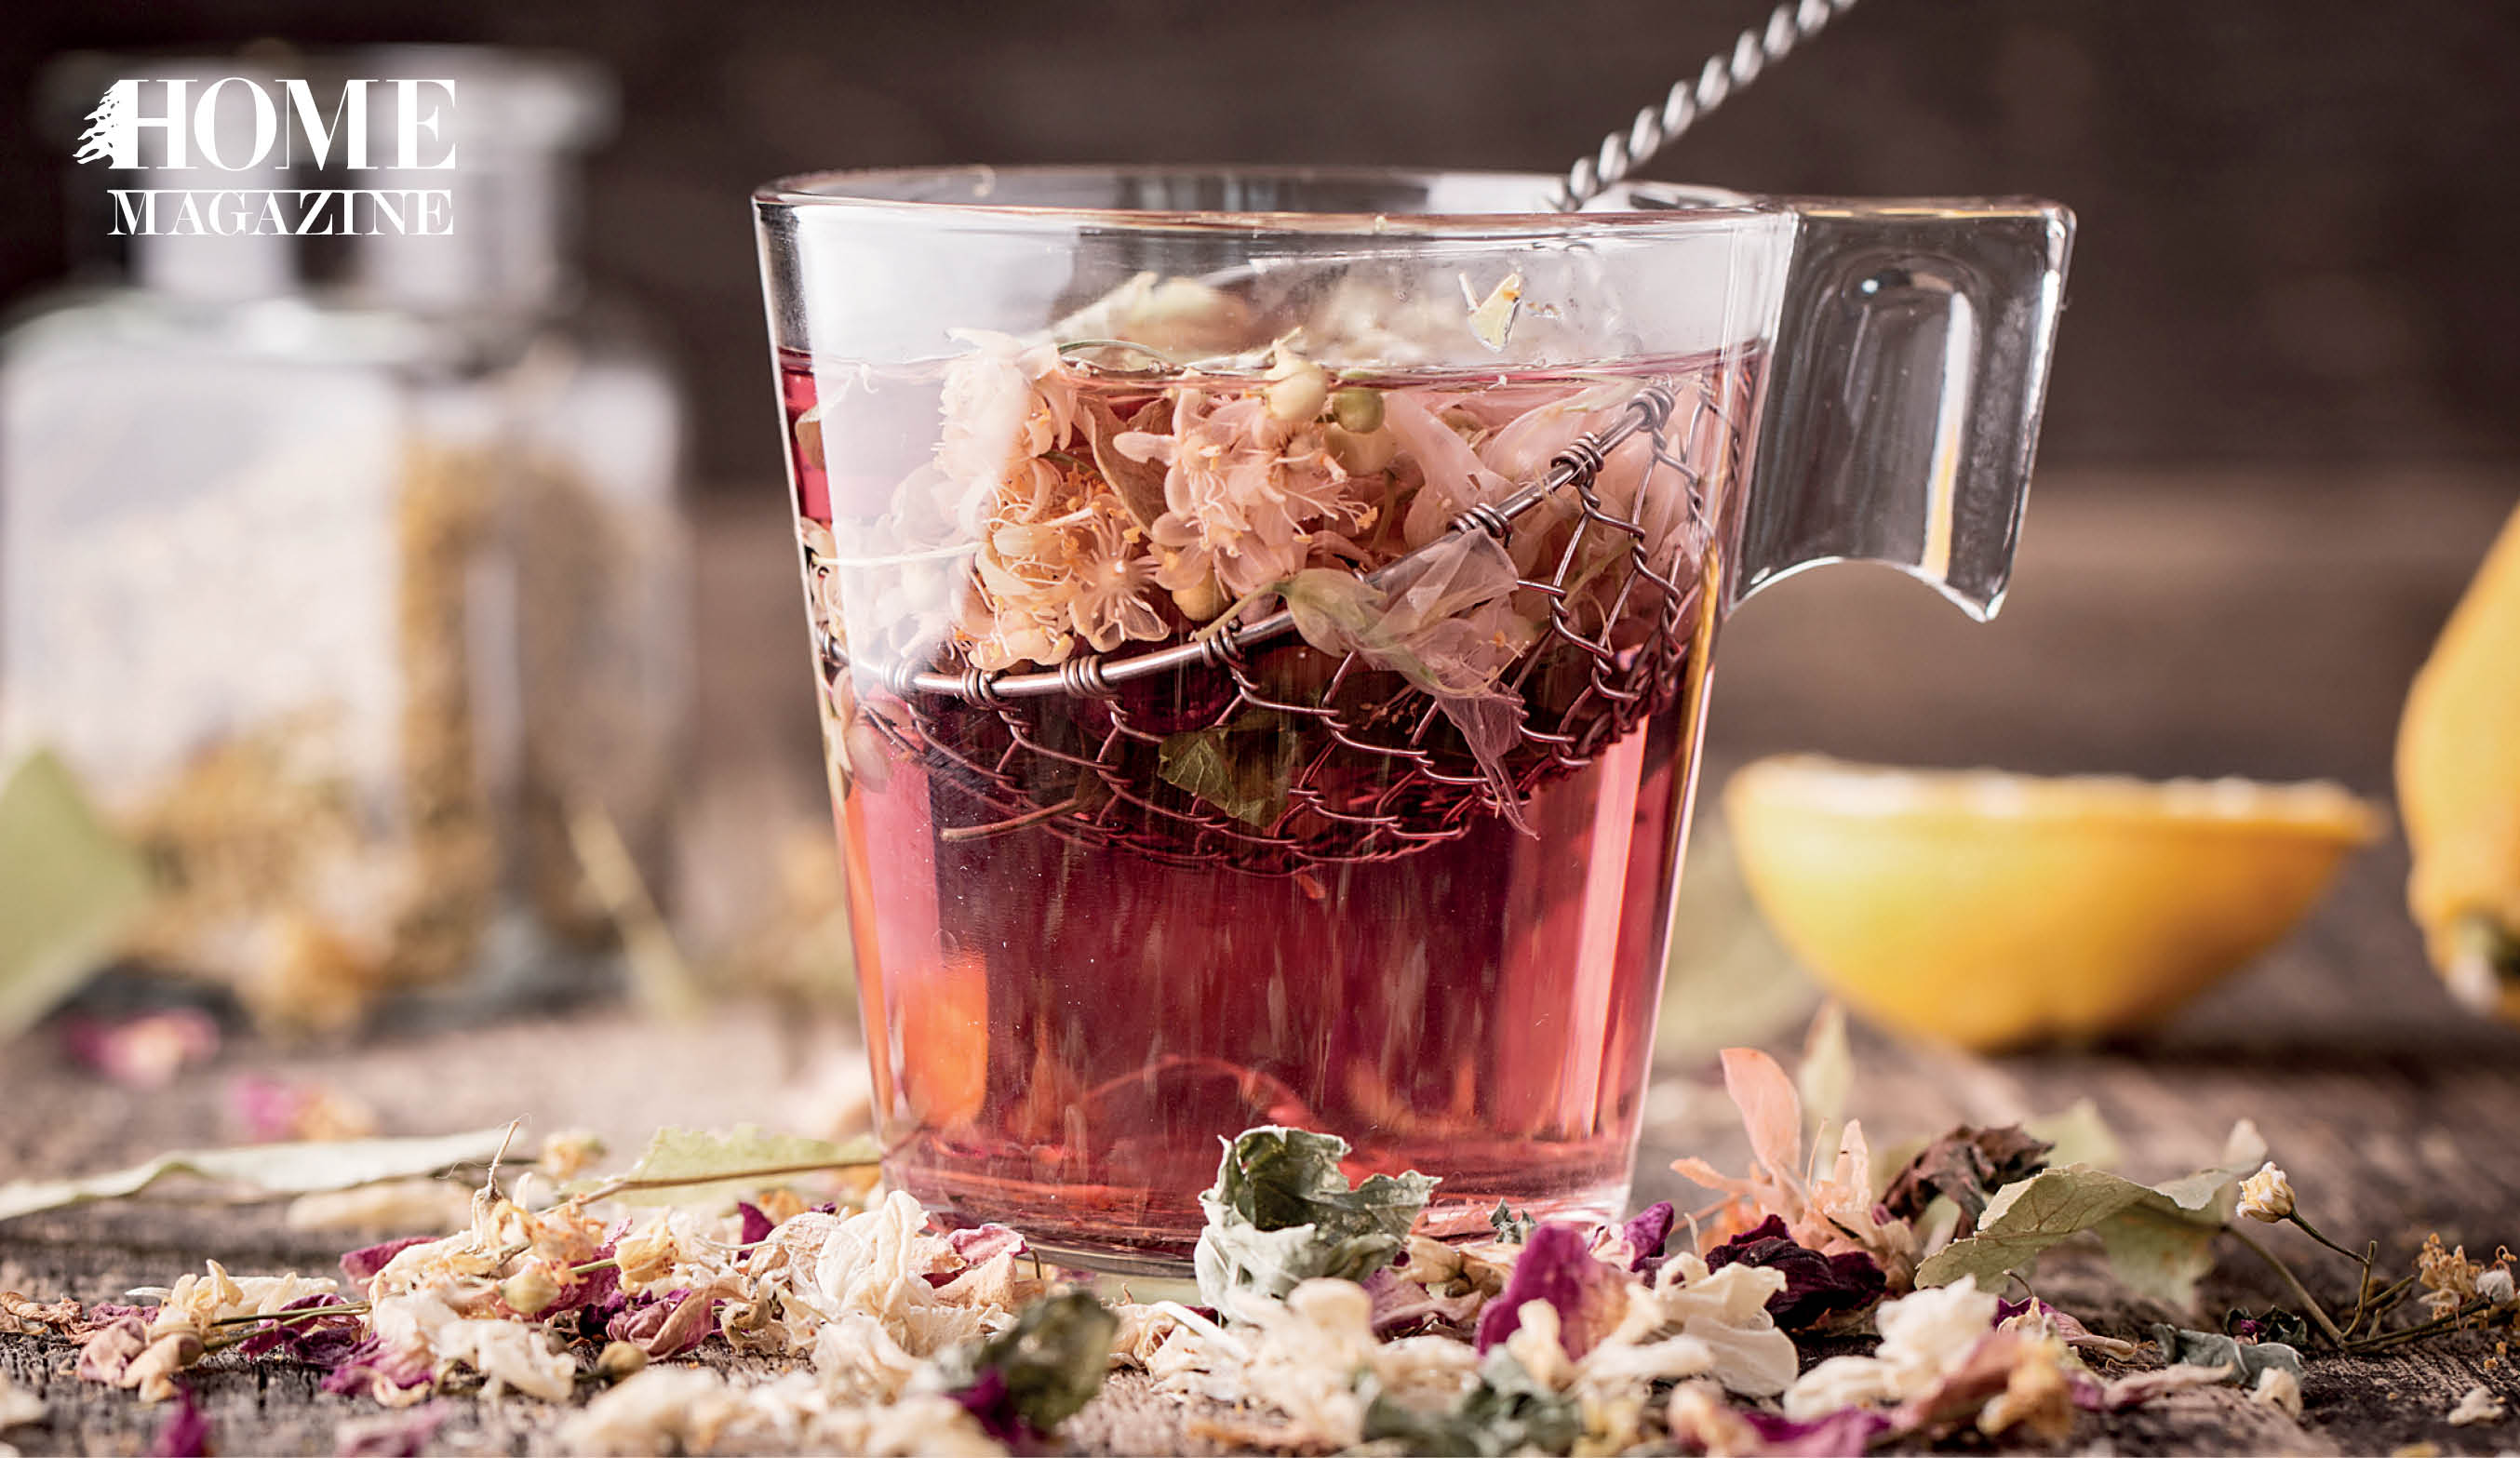 Flower herbs and brown liquid in a cup